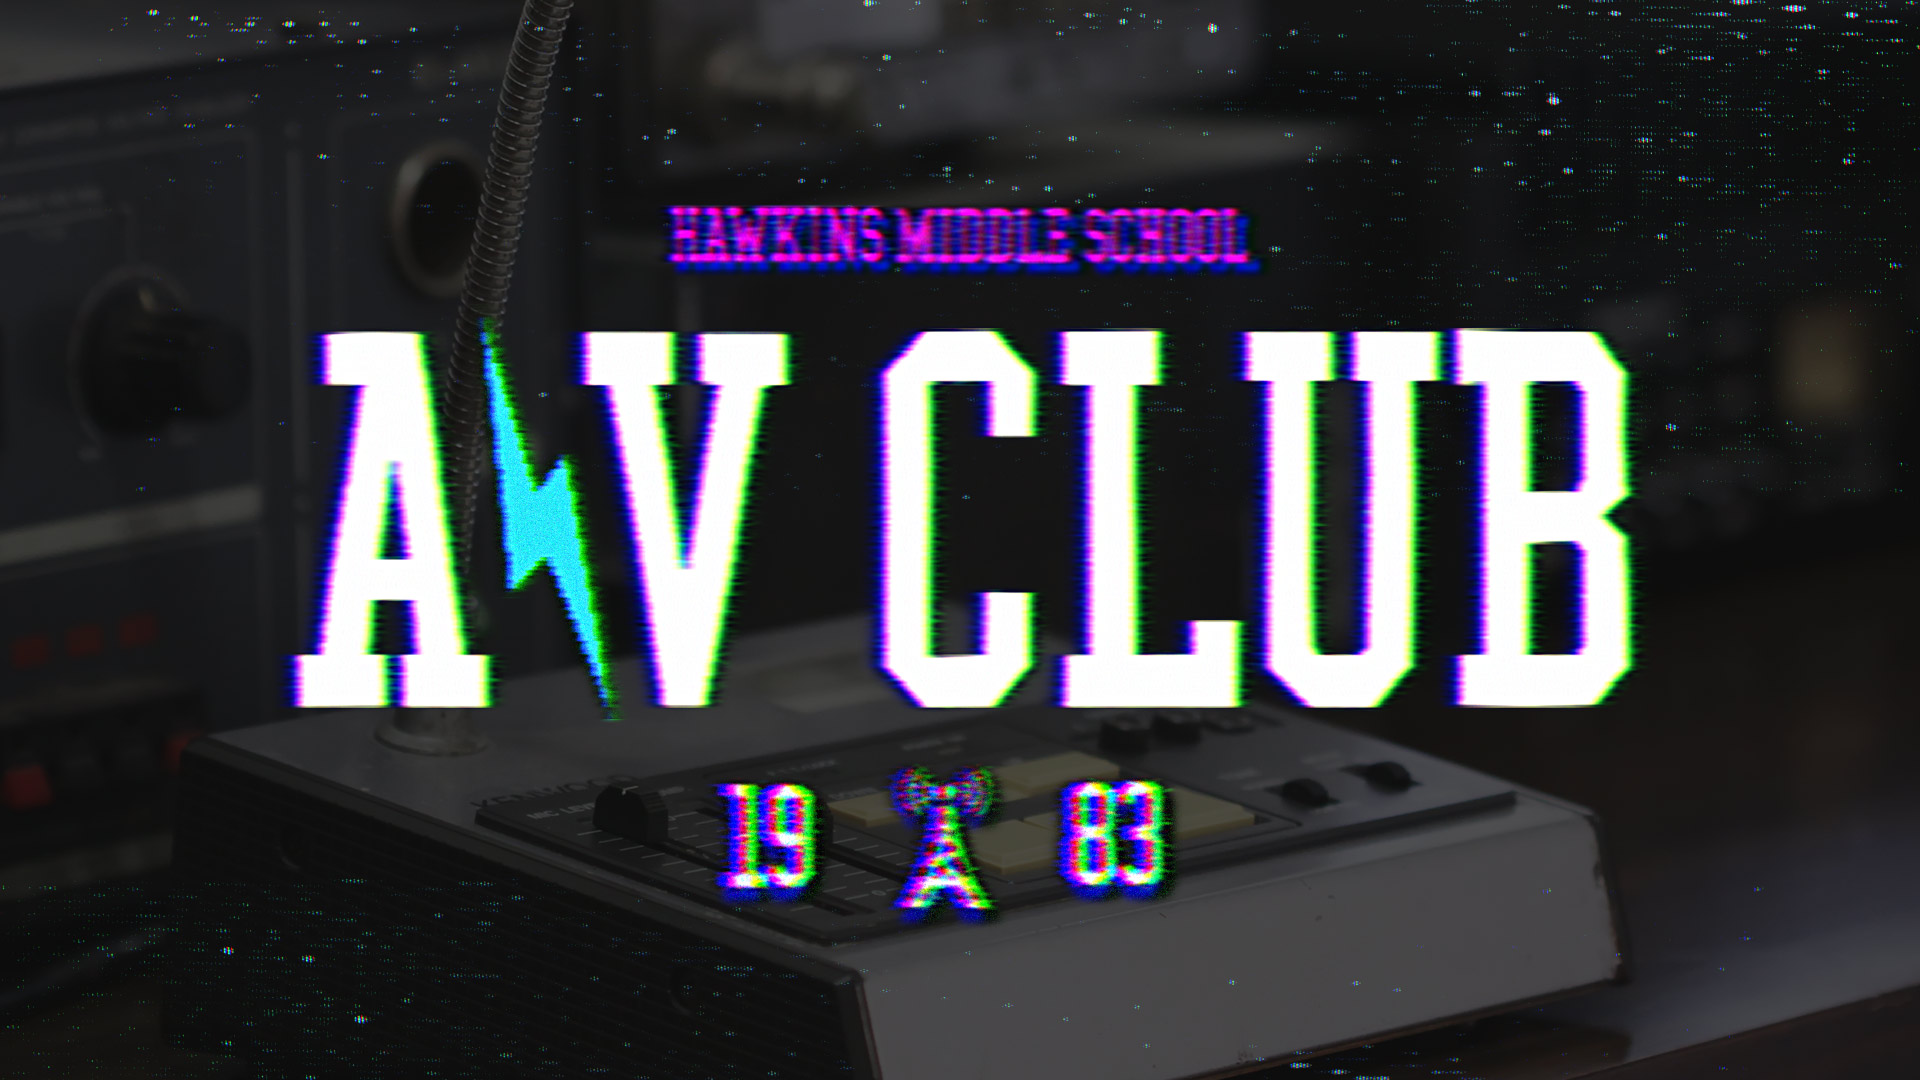 Getting Started with Universe AV Club